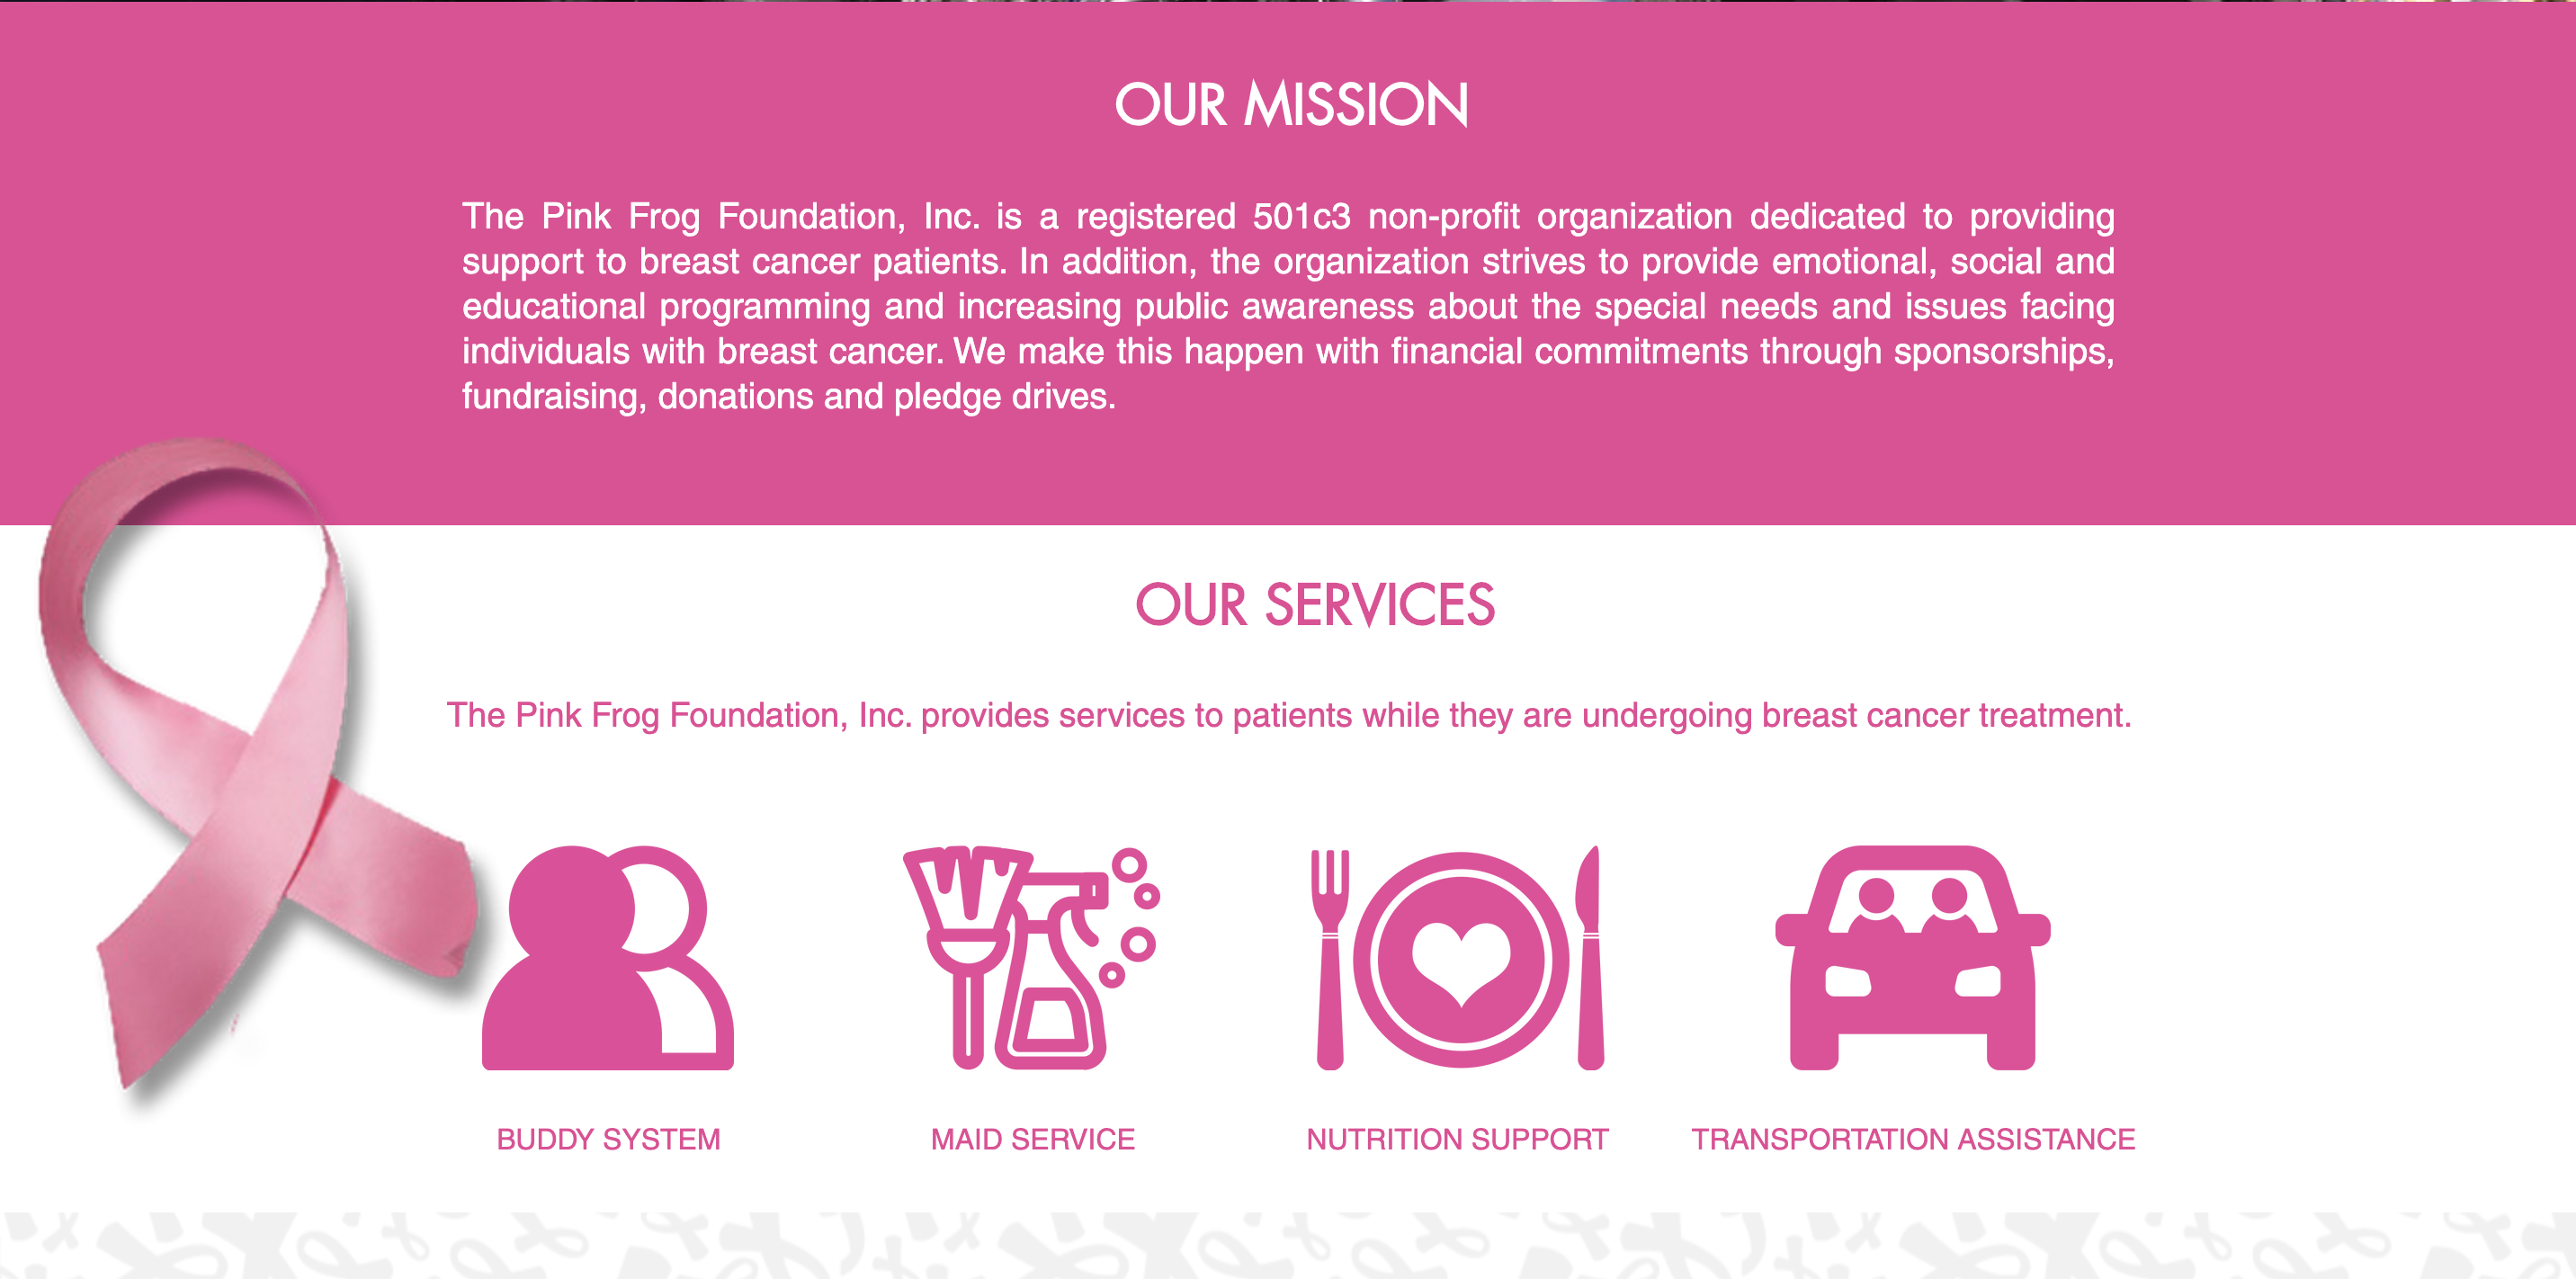 The Pink Frog Foundation Overview